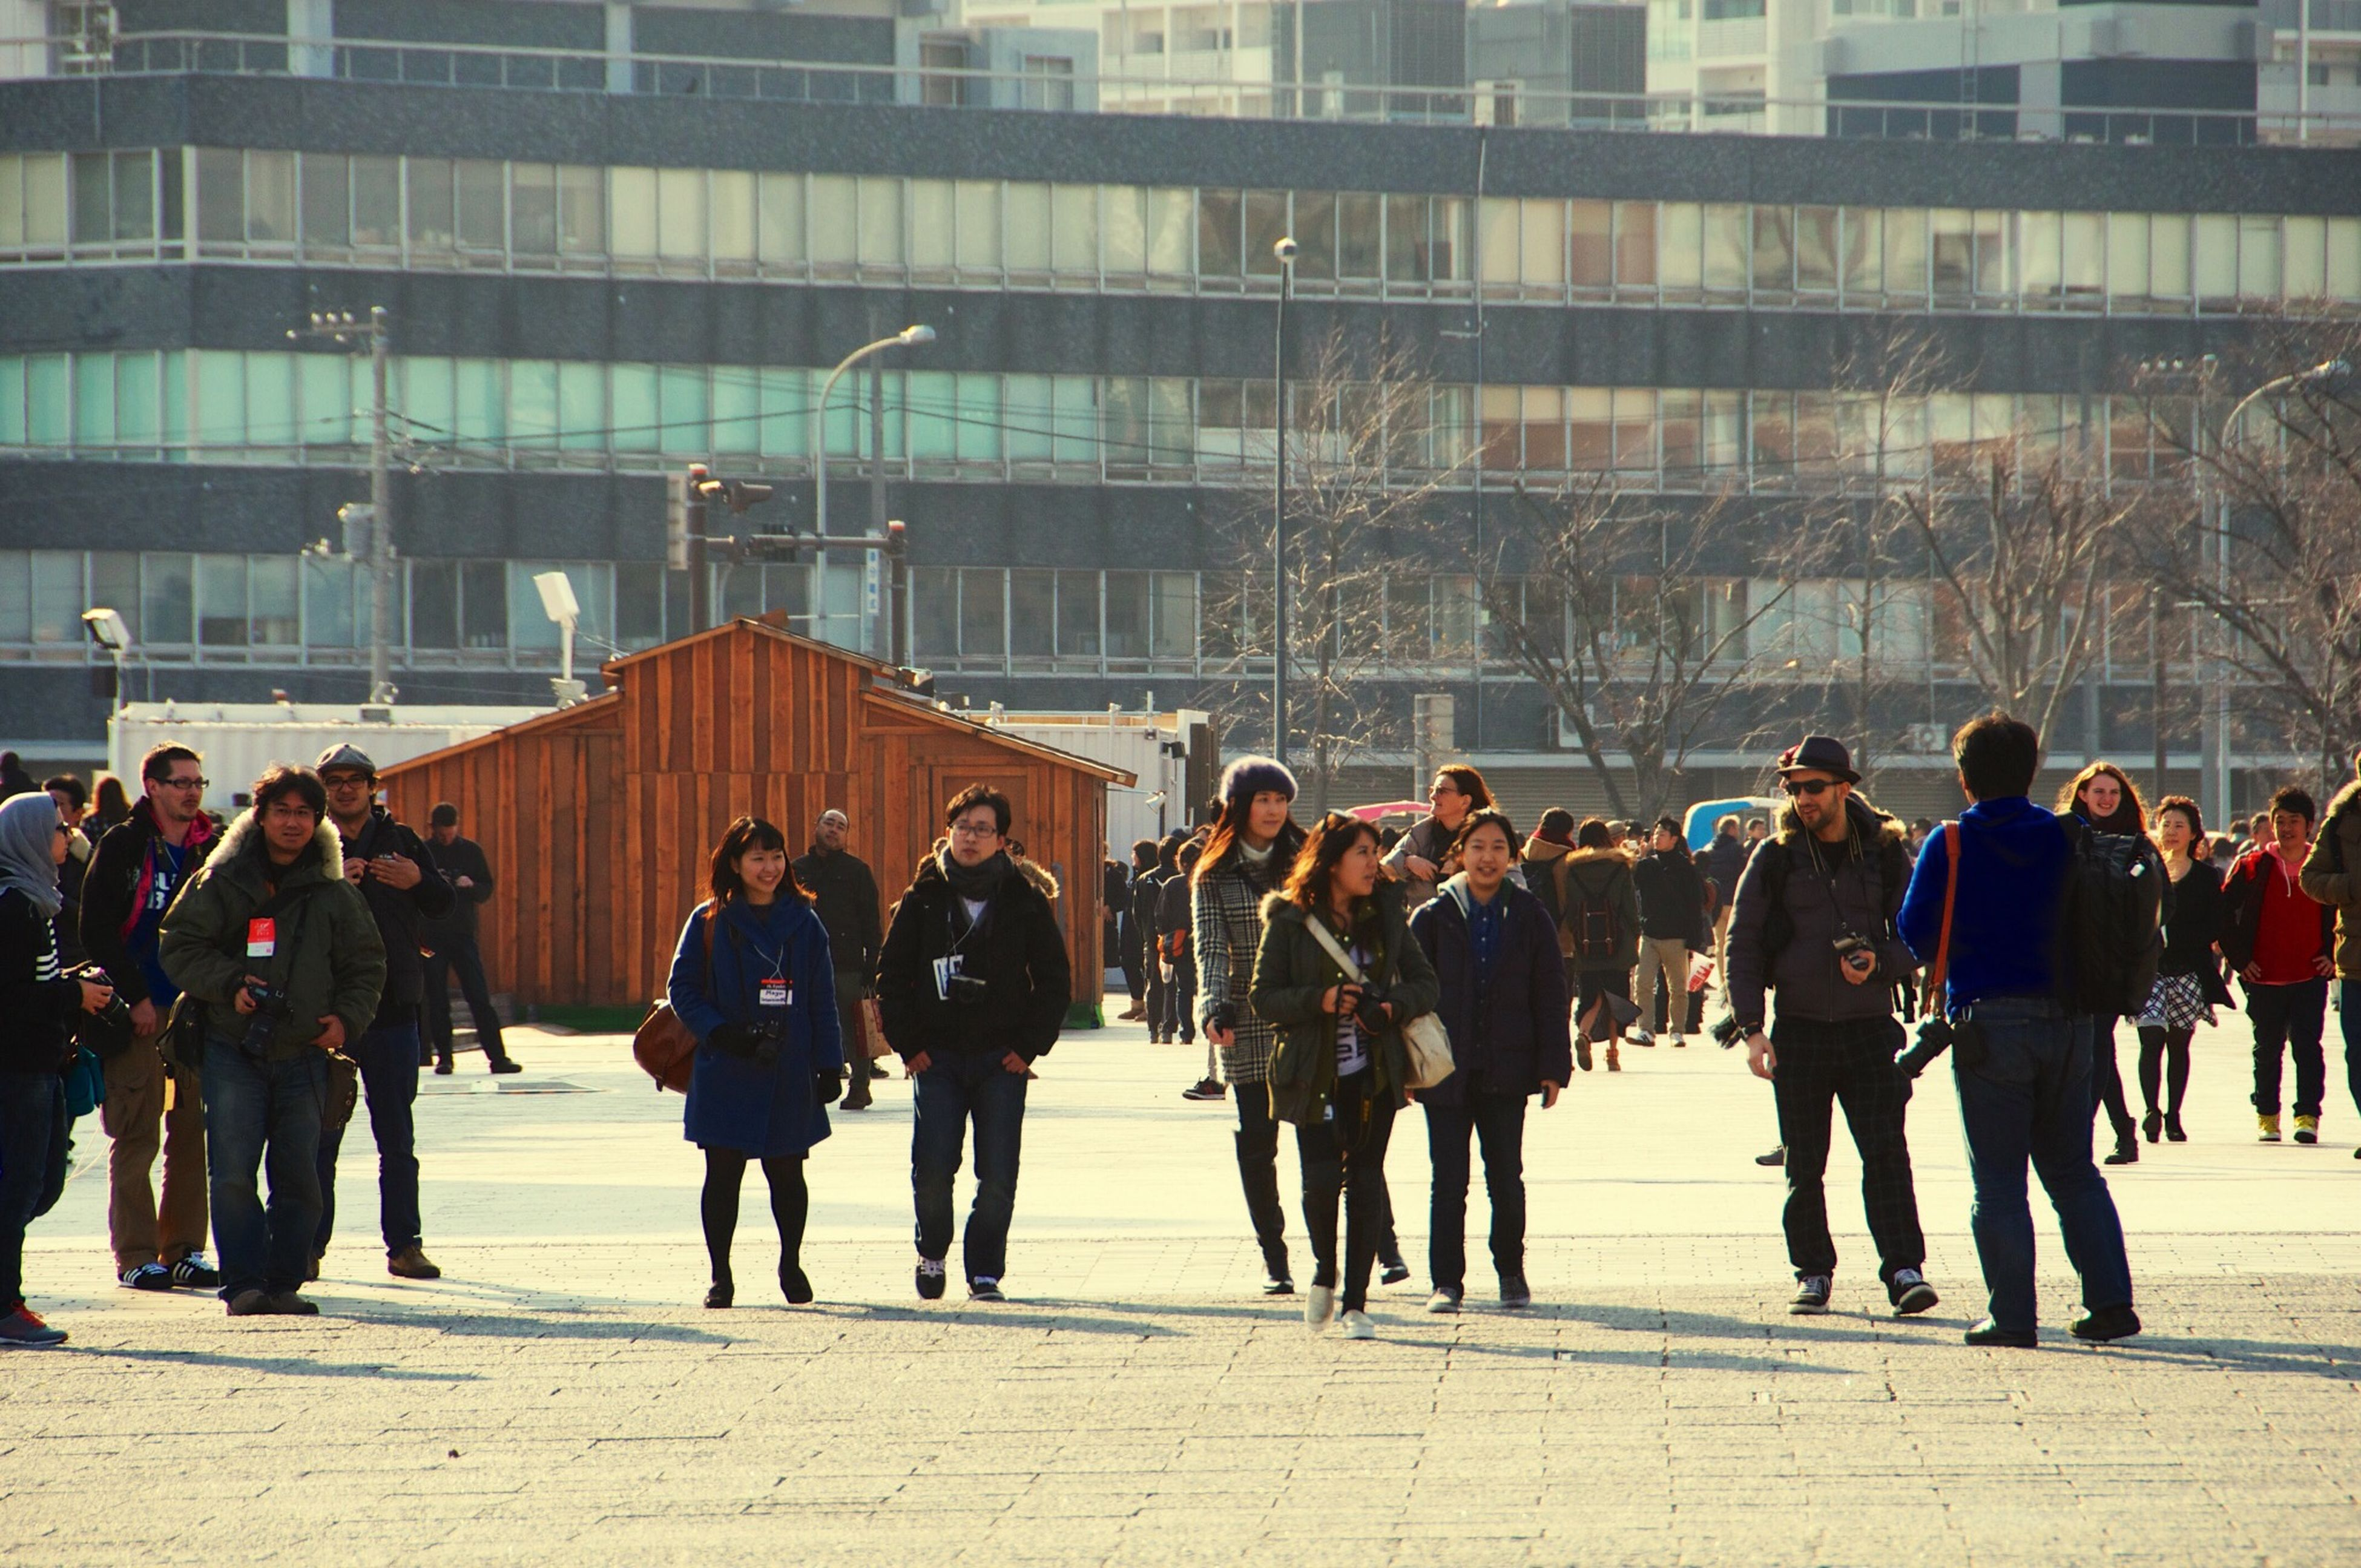 large group of people, architecture, built structure, building exterior, person, men, lifestyles, walking, city life, leisure activity, city, street, mixed age range, full length, day, outdoors, sunlight, building, travel